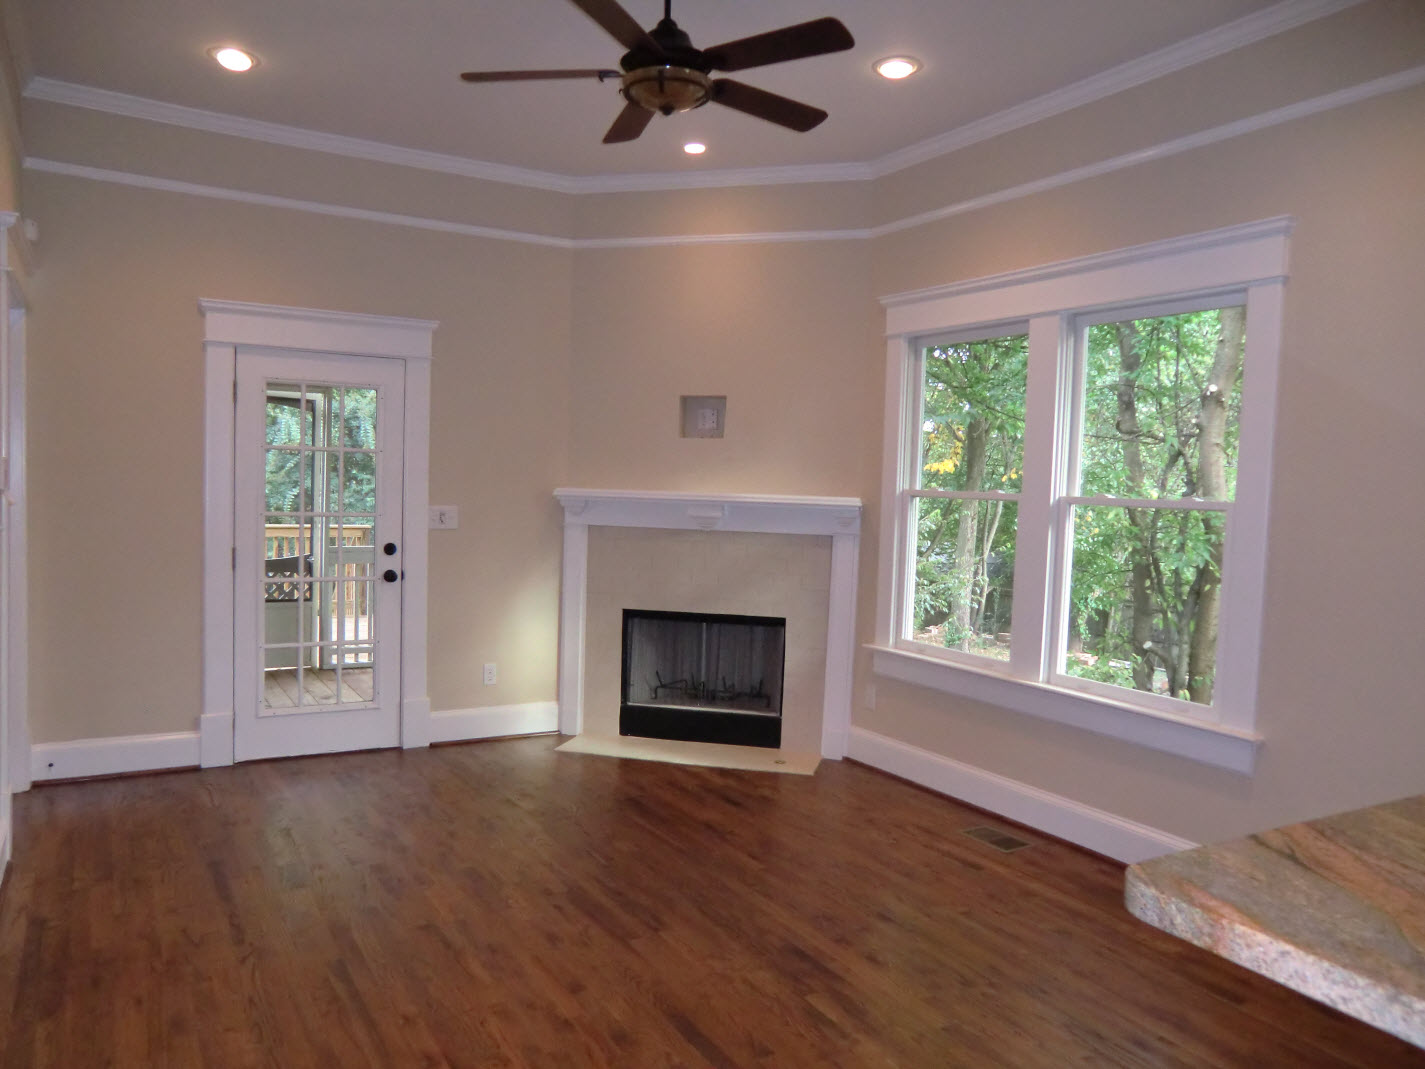 Family room addition off kitchen with 3rd fireplace for Great room addition off kitchen